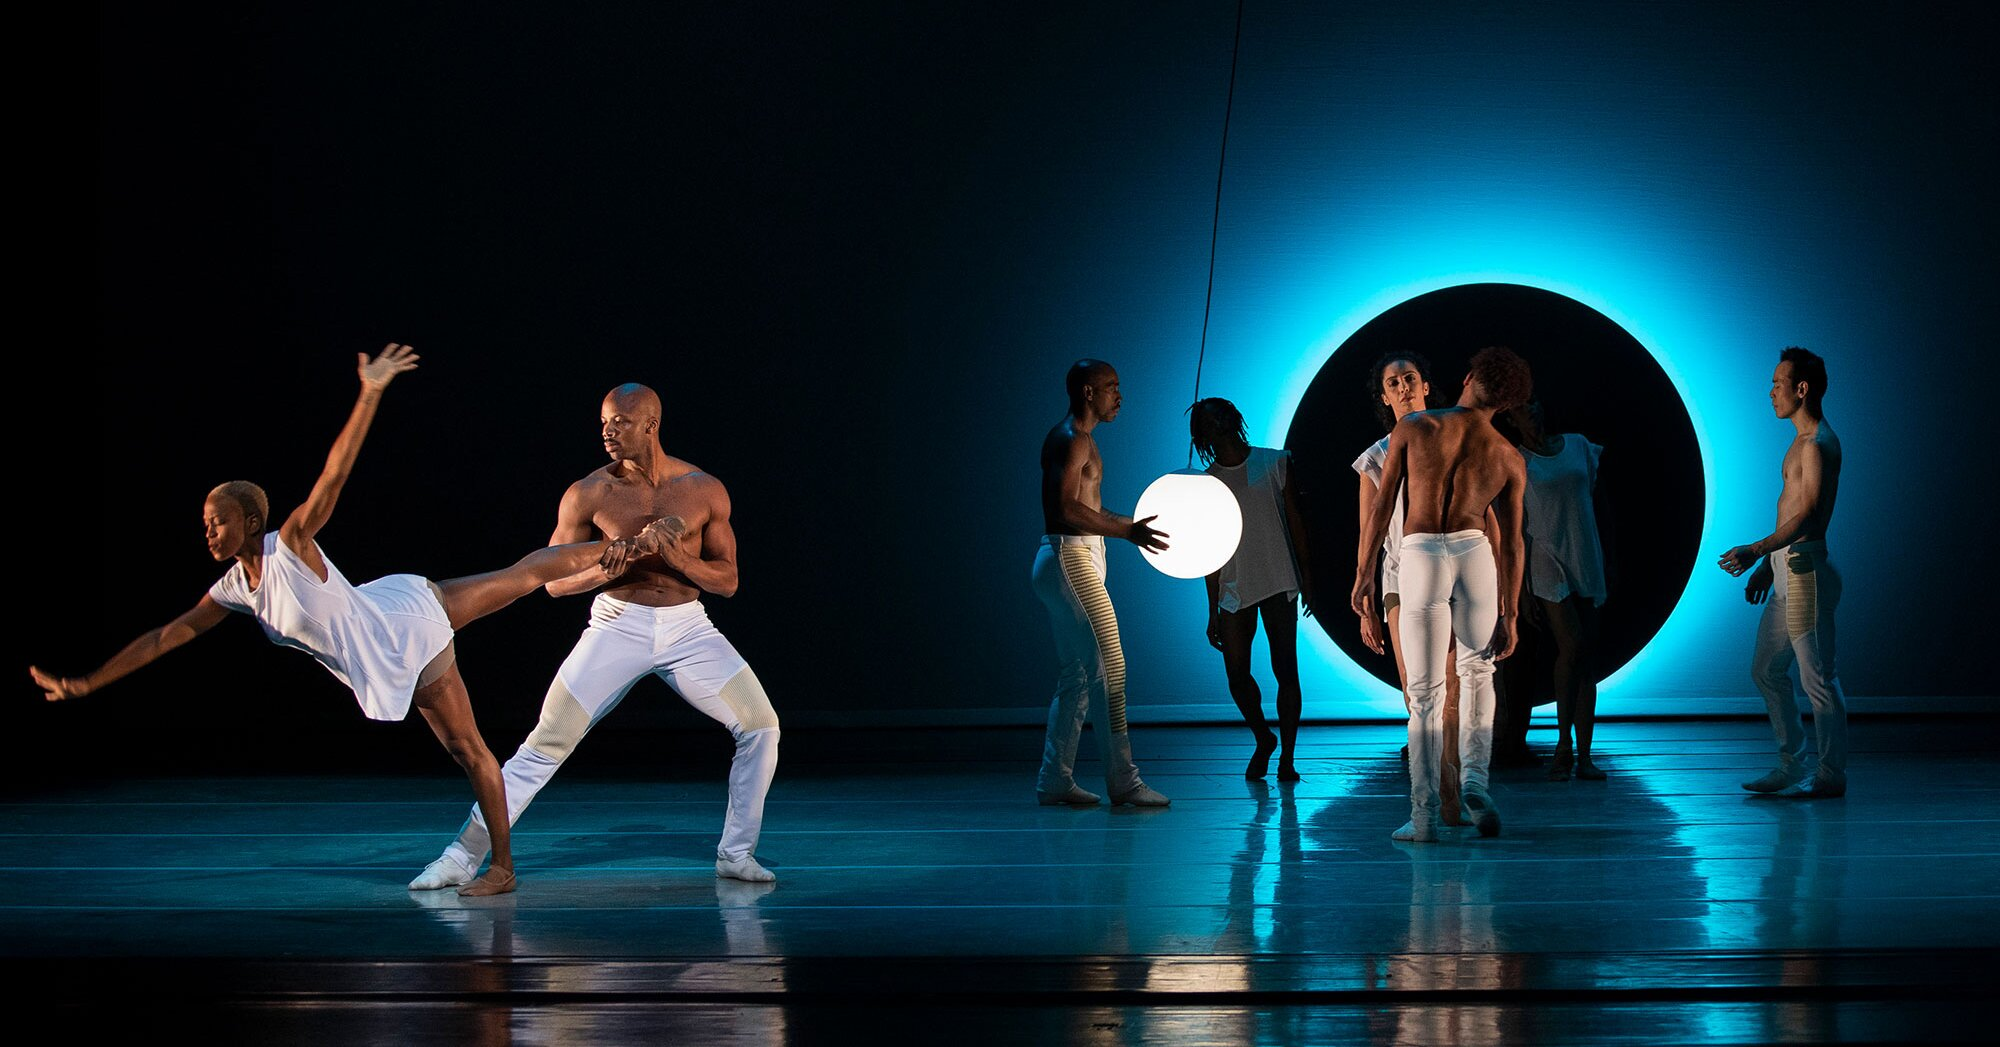 The best ballet and dance performances to stream during quarantine